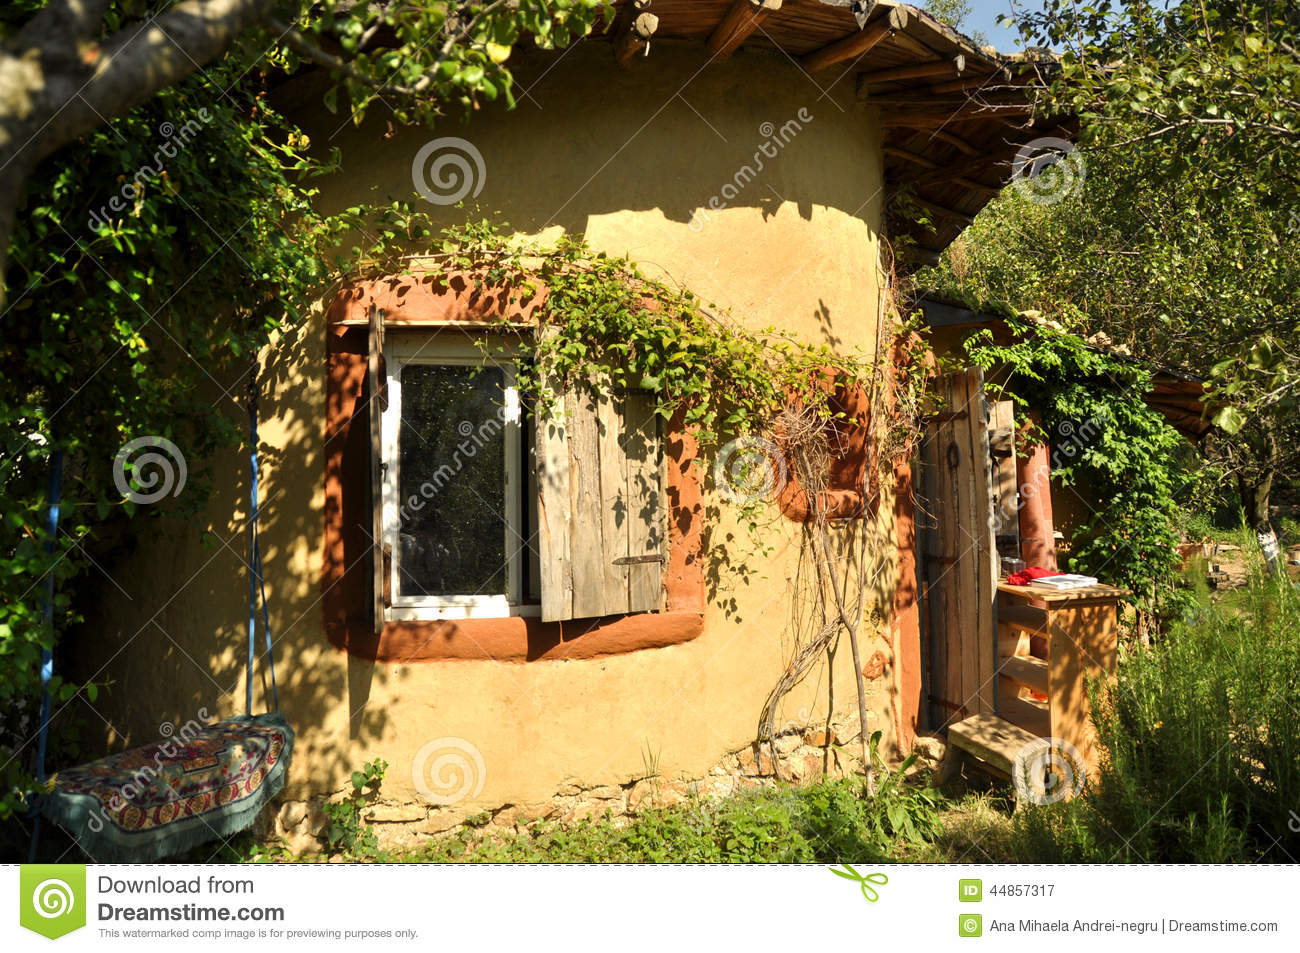 Cob house stock image image of harmonious closeup green 44857317 - The cob house the beauty of simplicity ...